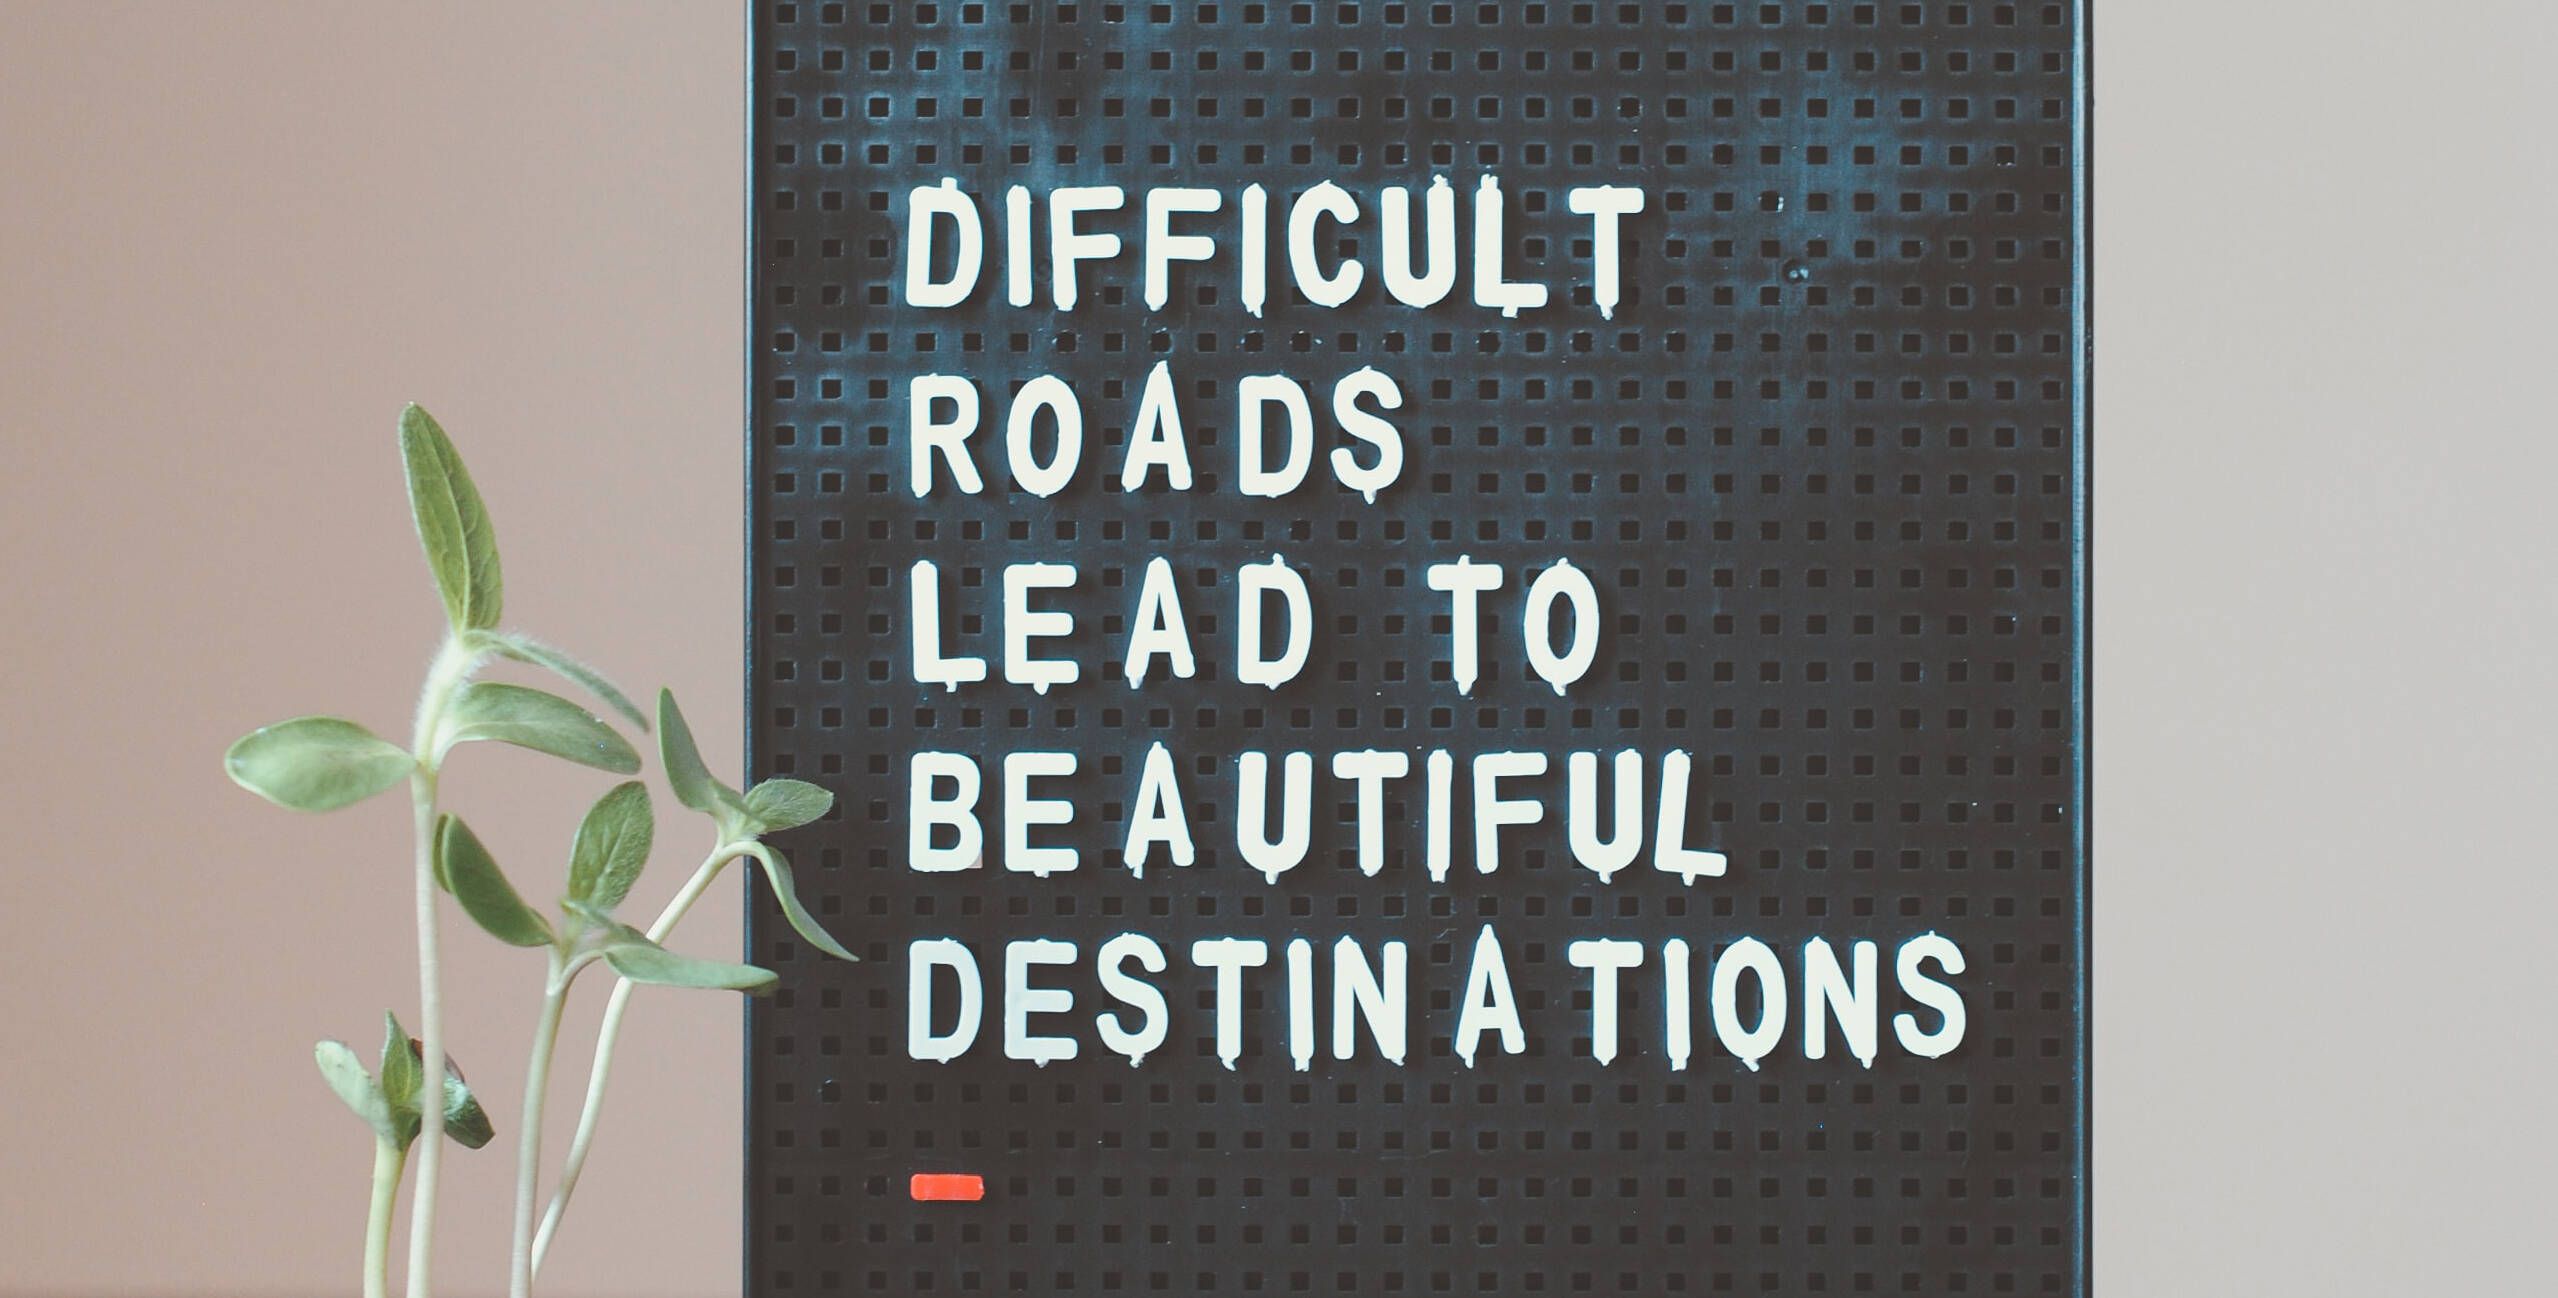 """Clipboard with """"Difficult roads lead to beautiful destinations"""" text"""